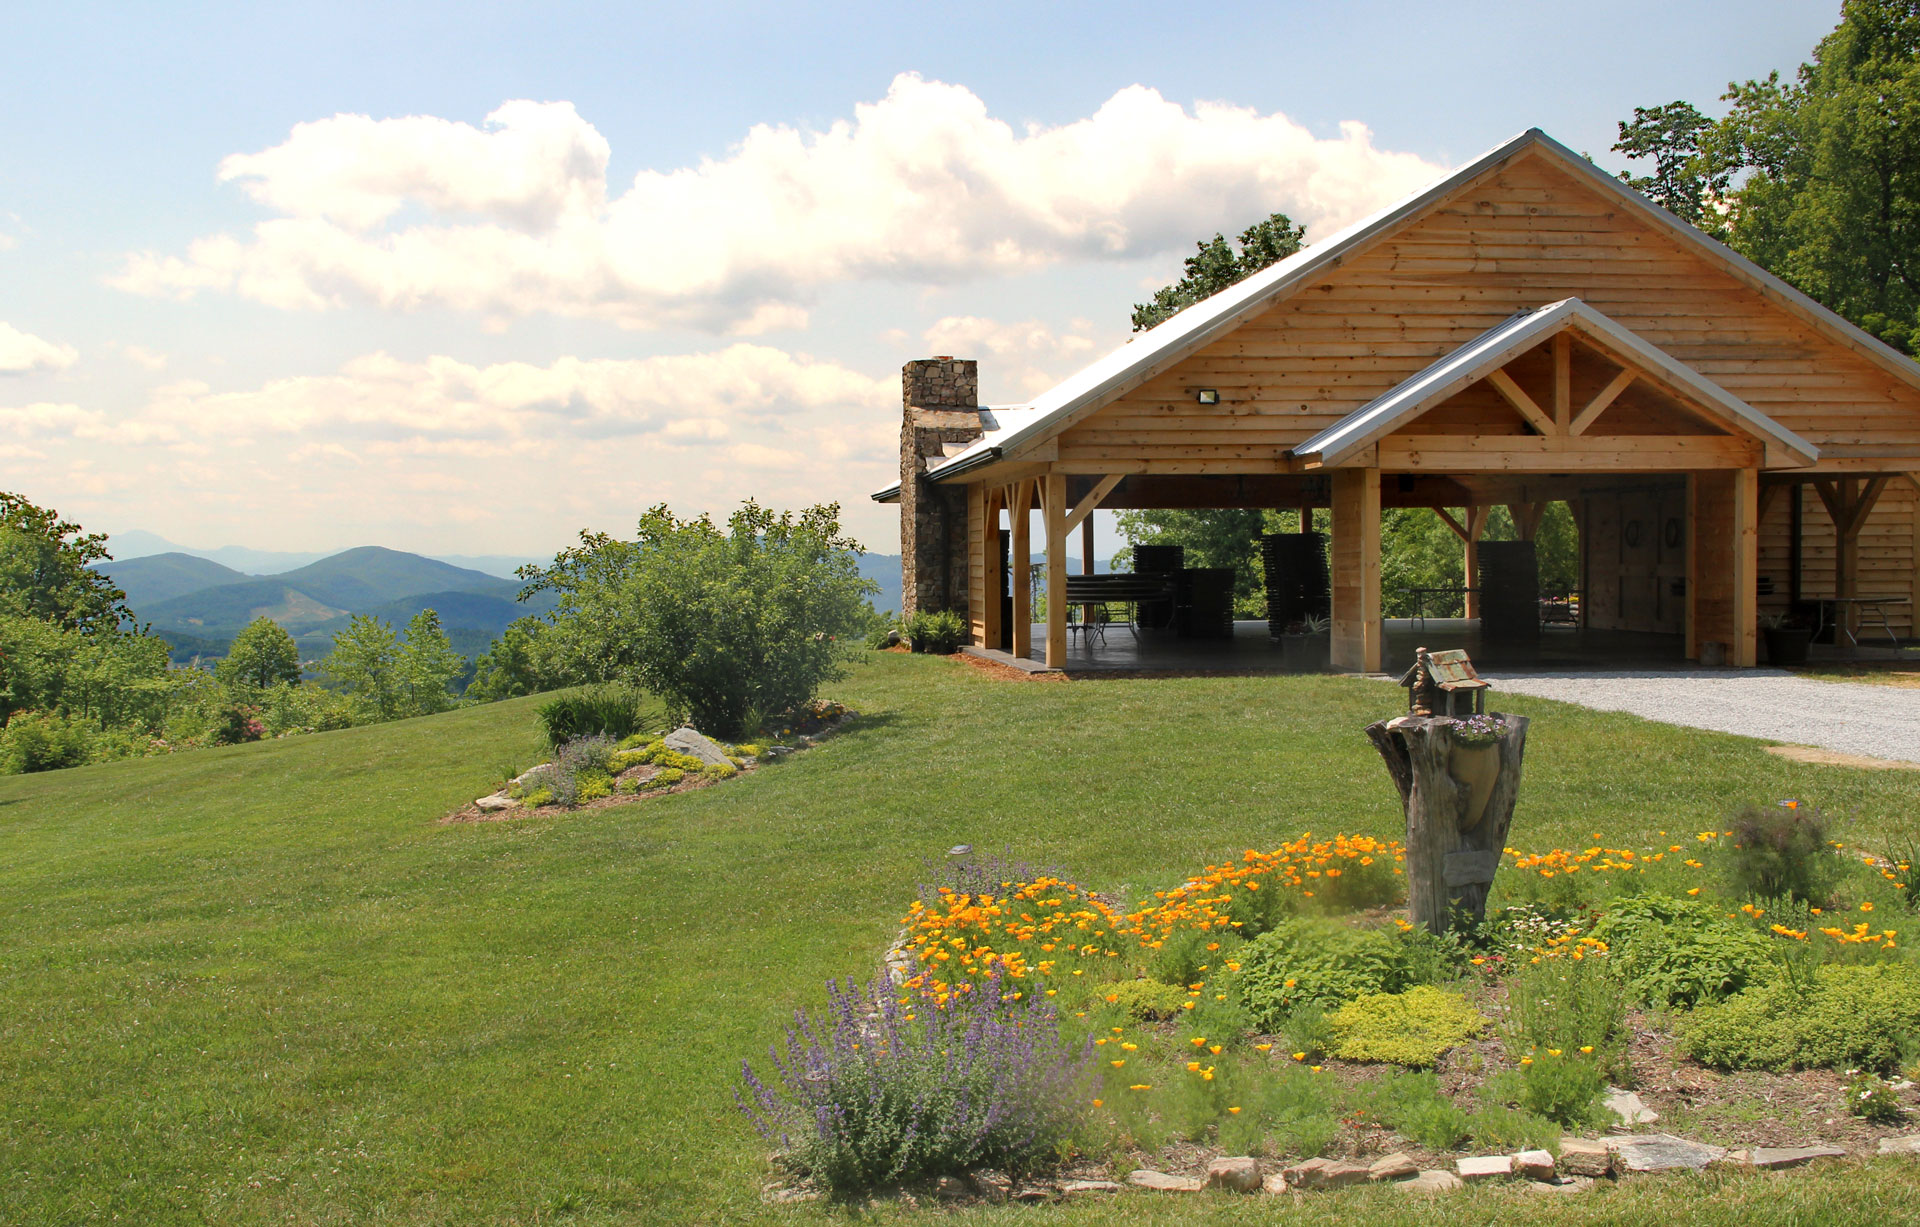 Wedding Chapels Near Me.Outdoor Wedding Venues Near Me In Western Nc The Cabin Ridge